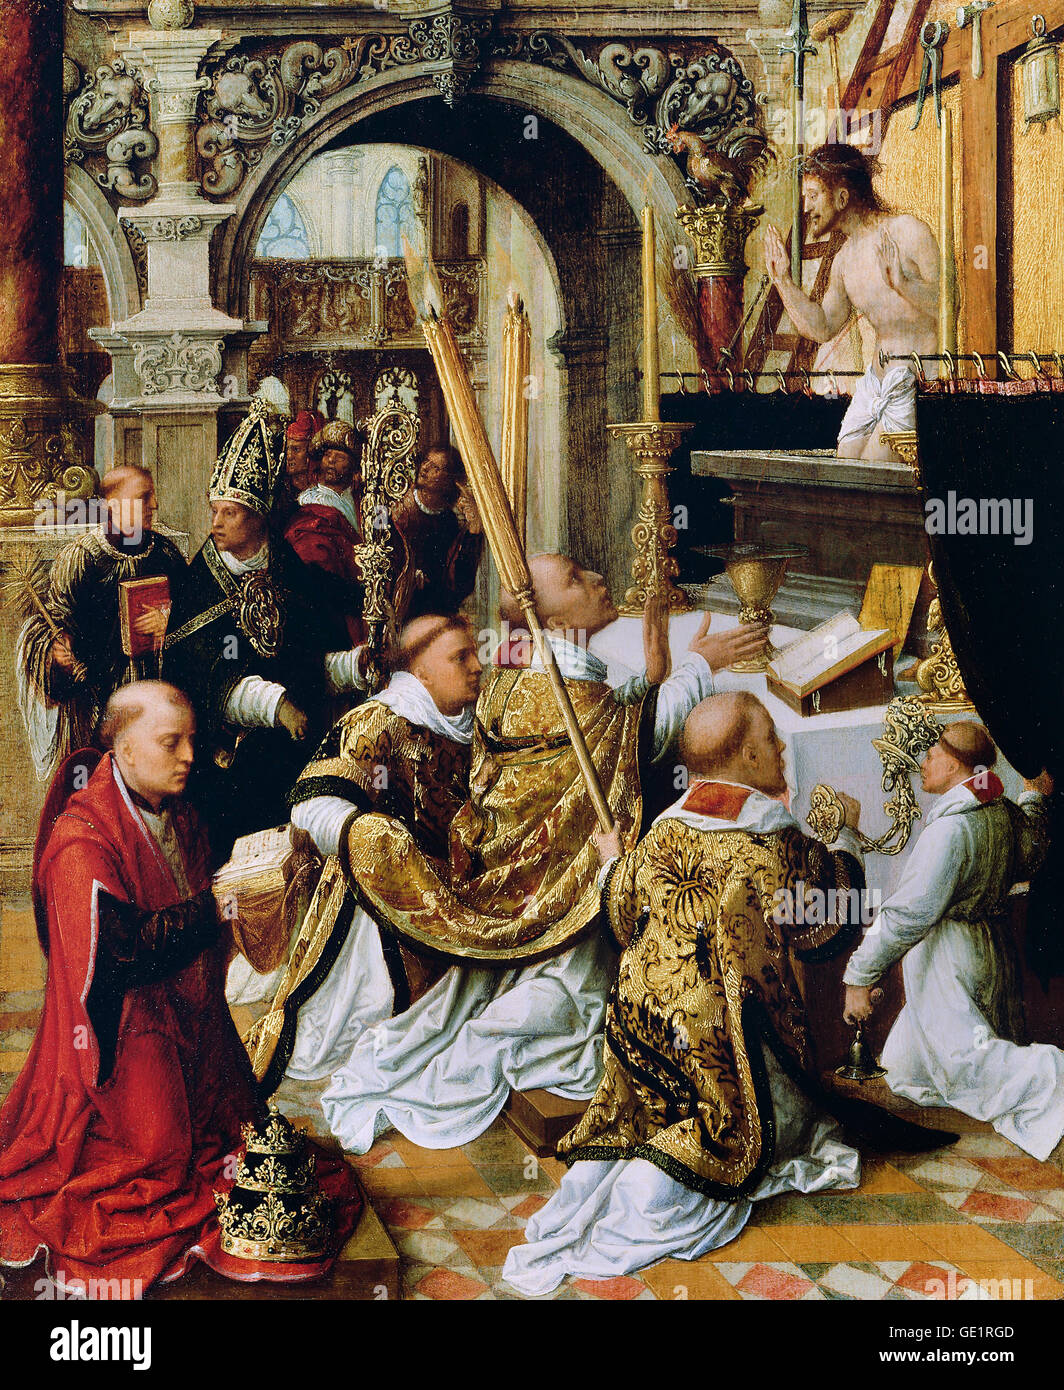 Adriaen Ysenbrandt, The Mass of Saint Gregory the Great. Circa 1510-1550. Oil on panel. Getty Center, Los Angeles, - Stock Image